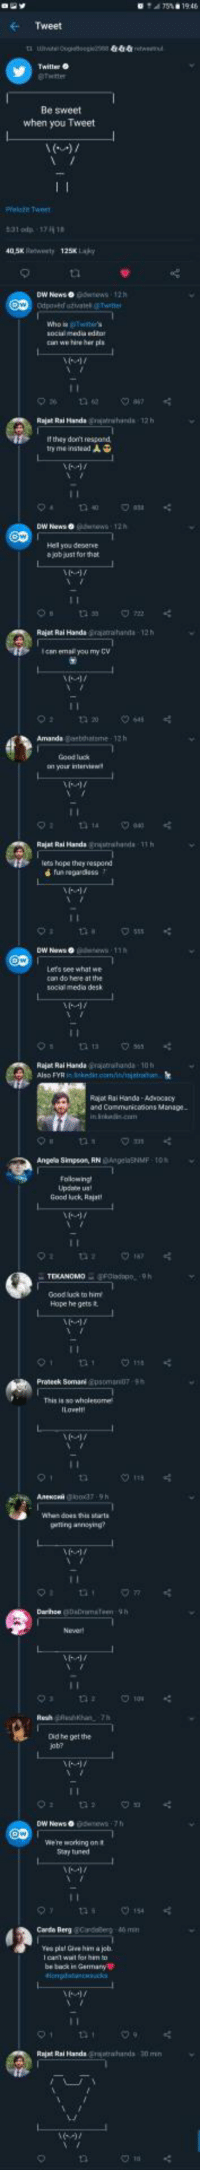 Twitter love at its finest: Tweet  Be sweet  when you Tweet  Pelon Twee  05Kety 125 Laky  can we hire her pis  Rajat Rai Hands grutwhands 12 h  If they donmt respond  try meinsteed  DW News o  you deserse  a job just for that  Rajet Rai Handa ajthata-12h  can emal you my CV  Amanda Gabhatme-12h  Good luck  your interve  Rajat Rai Handa gijuthnda 1h  lets hope they respond  DW News  Lets see what we  Rajet Rai Handa rjhd 10h  Rajor Rai Hands-AdwDoacy  and Communicaions Manage  Angela Simpeon, RNeNMF TO  Updabe us  Good luck Rajat  Goodluck to  Hope he gets t  Semani Gpsoma  This is so wholesome  gerting anneying?  Oid he get the  job?  DW News o  We're woring on t  Say tiuned  Carde Berg @cirdee  40 m  pist Ghee him a joh  be back in Garman  Rajat Rai Handshards 30 m Twitter love at its finest